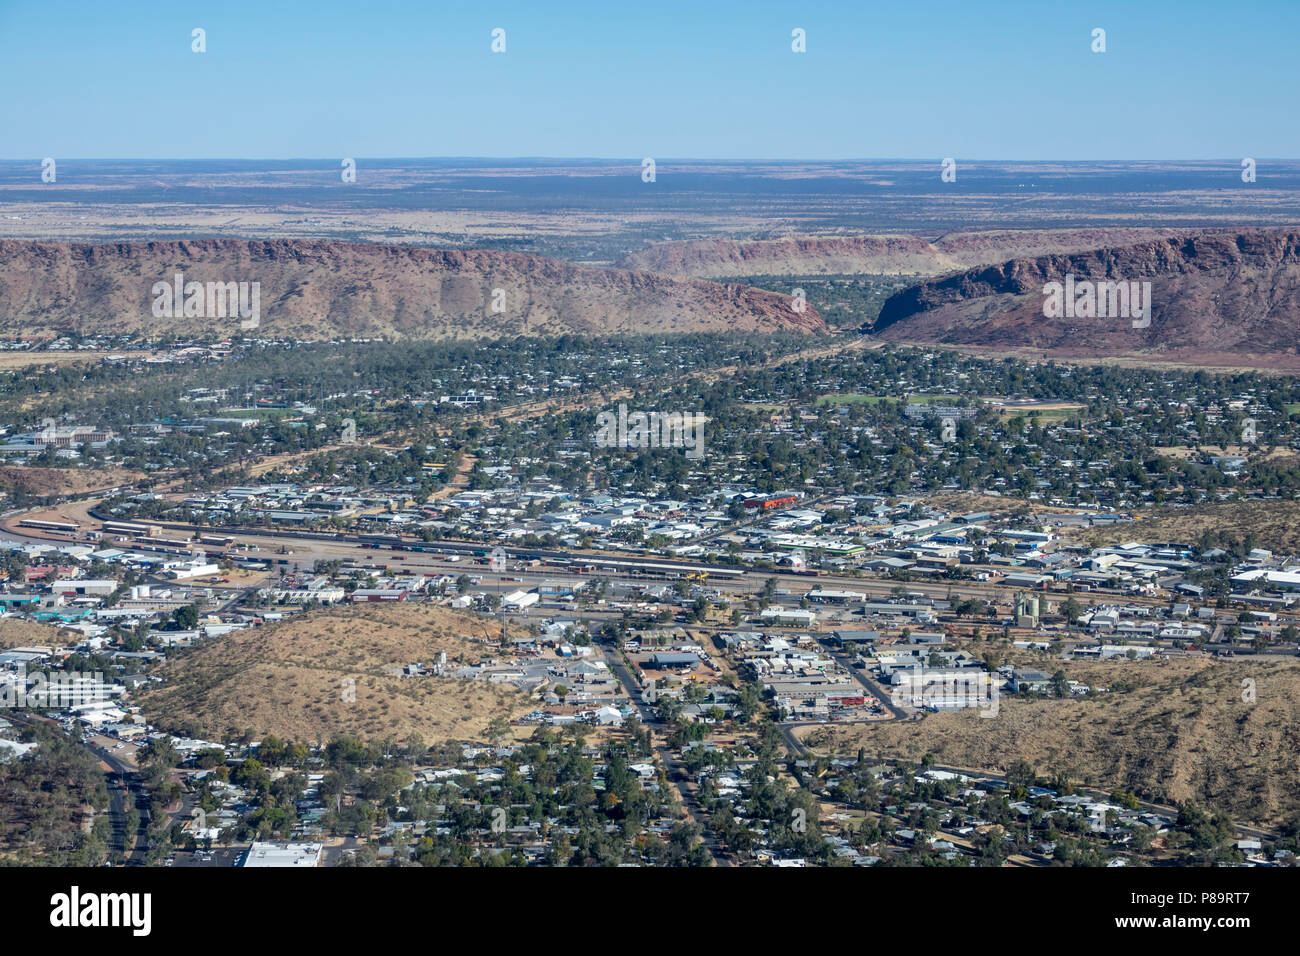 Aerial view over Alice Springs with The Ghan at Alice Springs station, Northern Territory, Australia - Stock Image